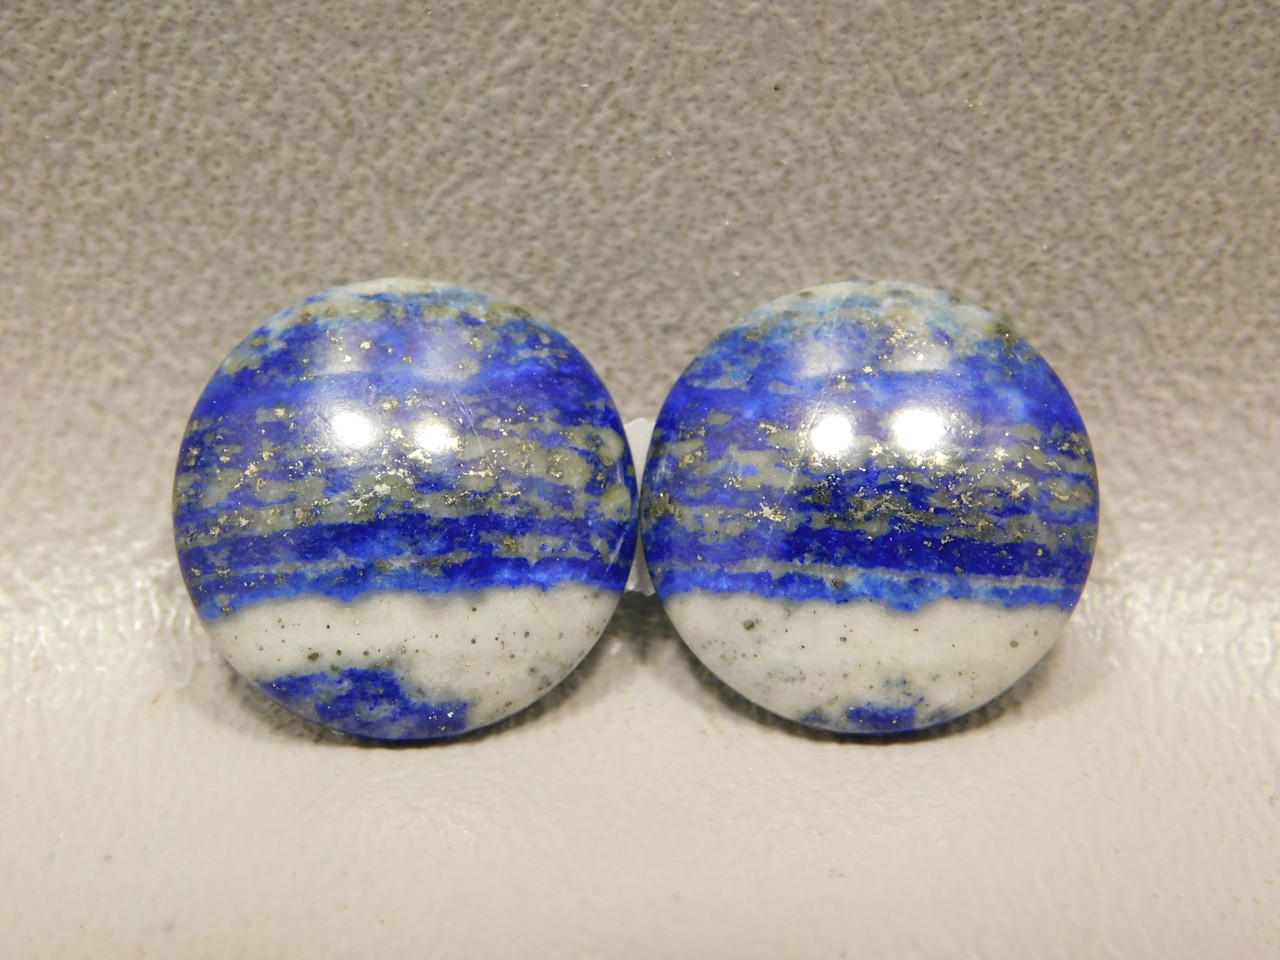 Cabochons Natural Stones Lapis Lazuli 17 mm Rounds Matched Pairs #24